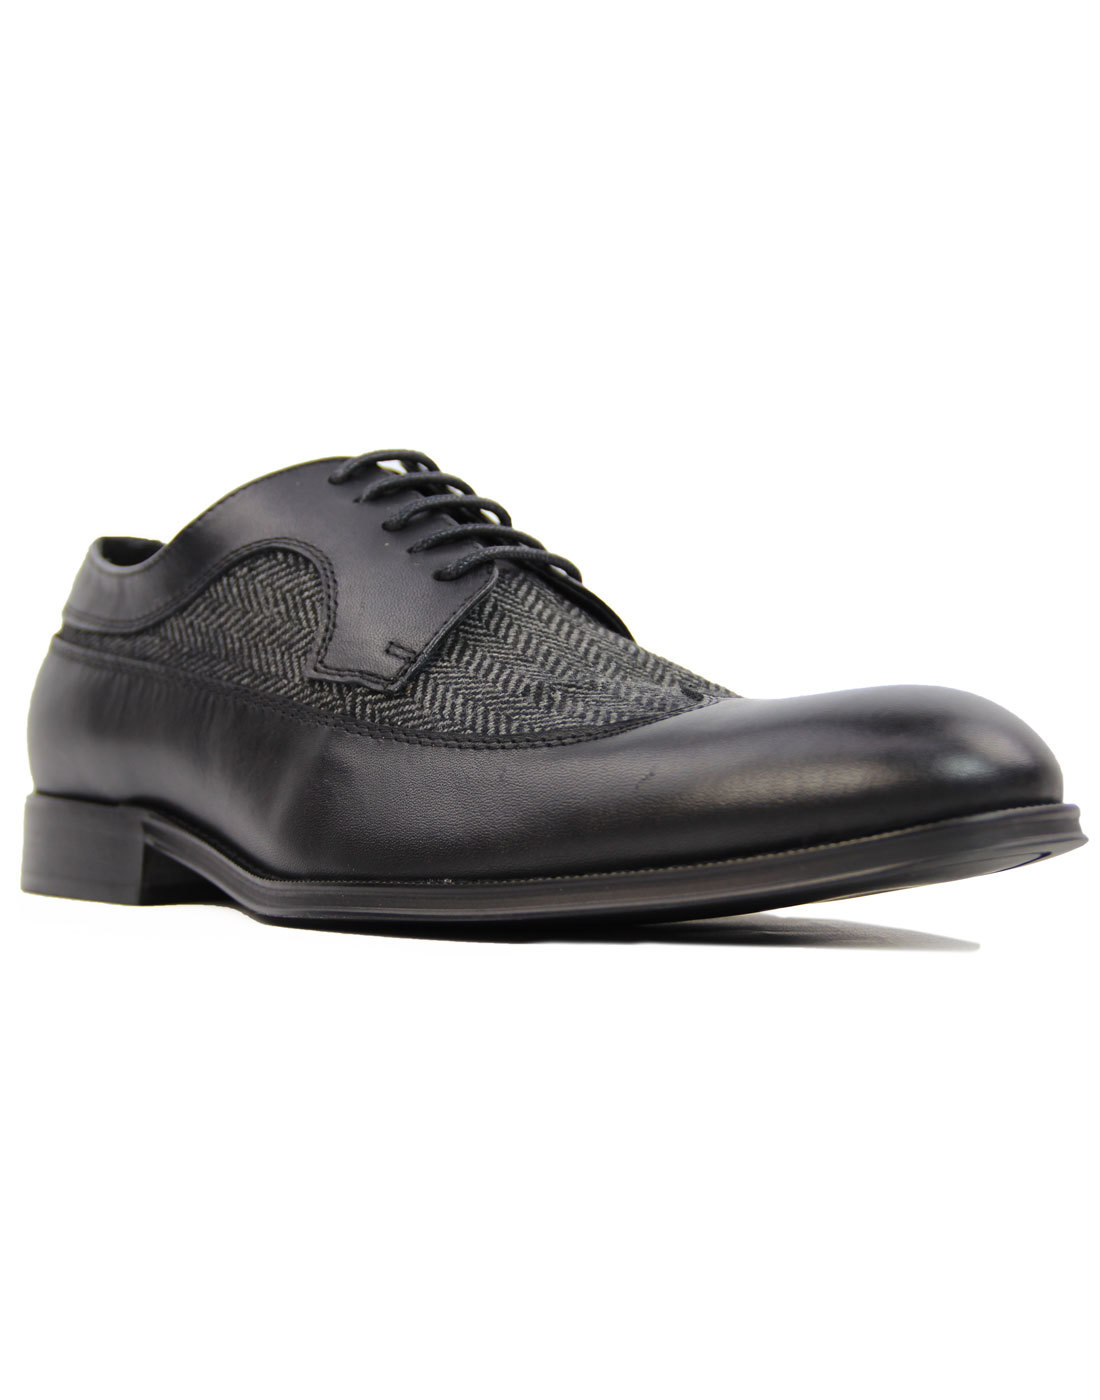 Roberto PAOLO VANDINI Derby Tweed Leather Shoes